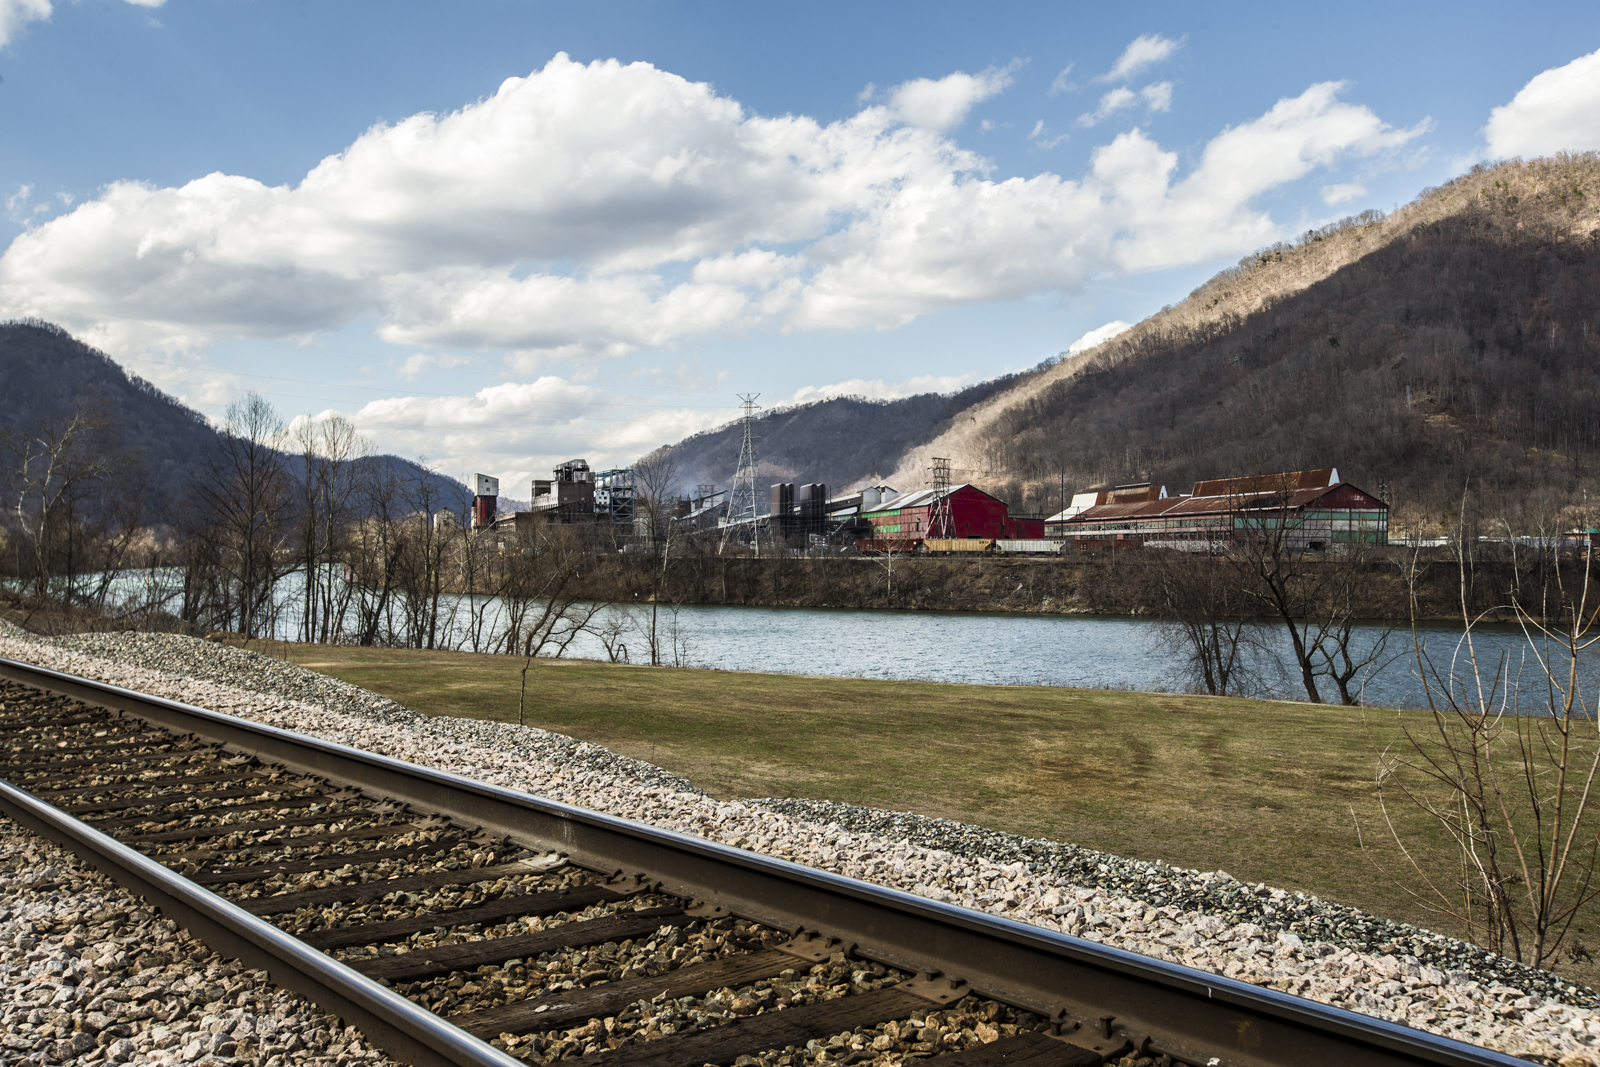 alloy-view-at-mount-carbon-in-valley-west-virginia-1st-day-of-spring-20141.jpg